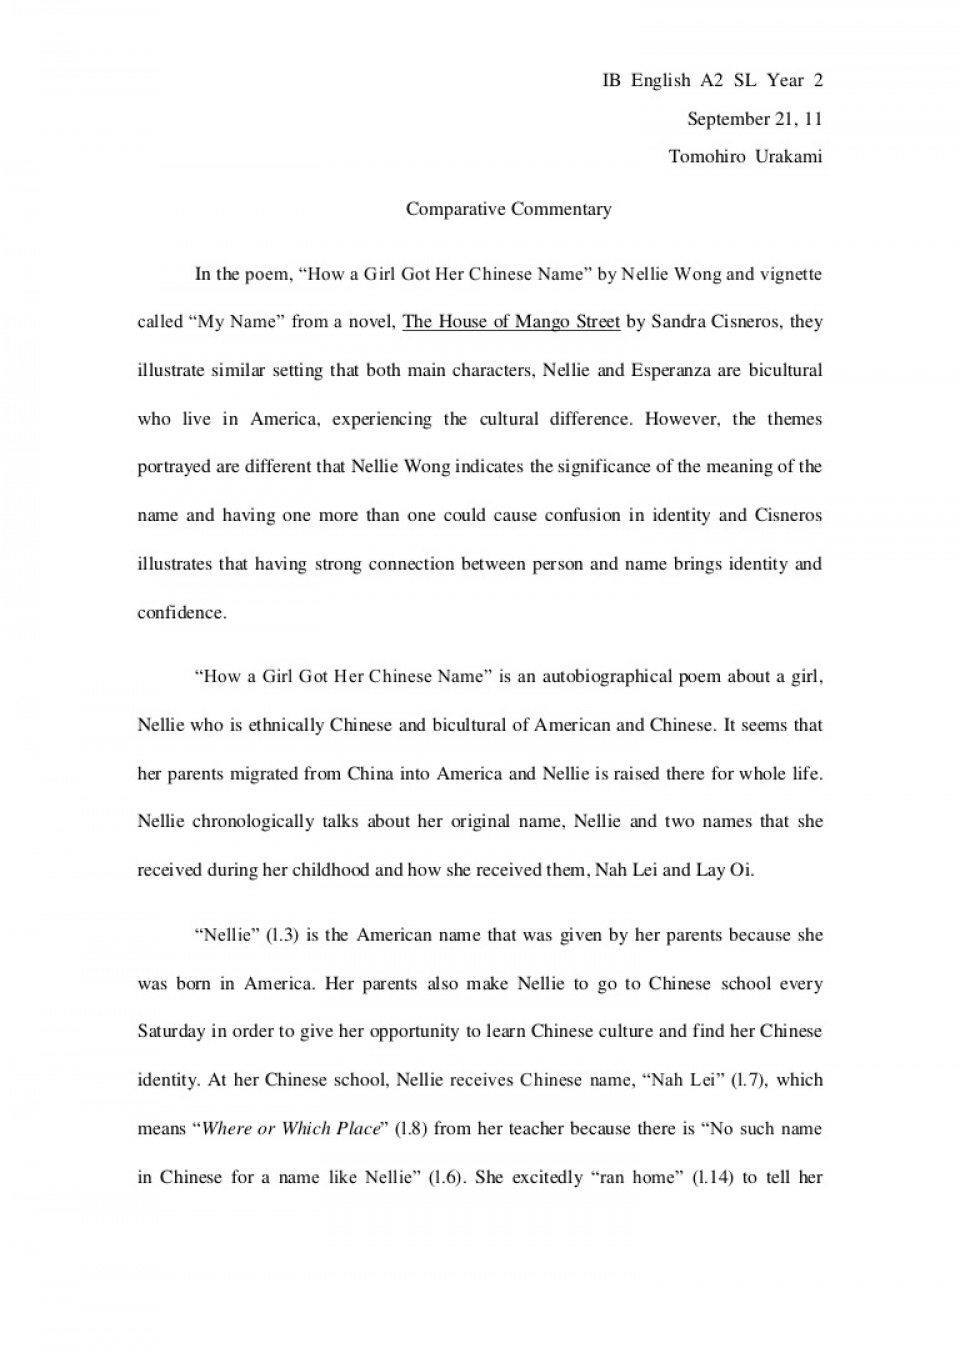 008 Compare And Contrast Essays Comparativeessaydraft Phpapp02 Thumbnail Magnificent Essay Examples 9th Grade For Elementary Students Topics 6th 960